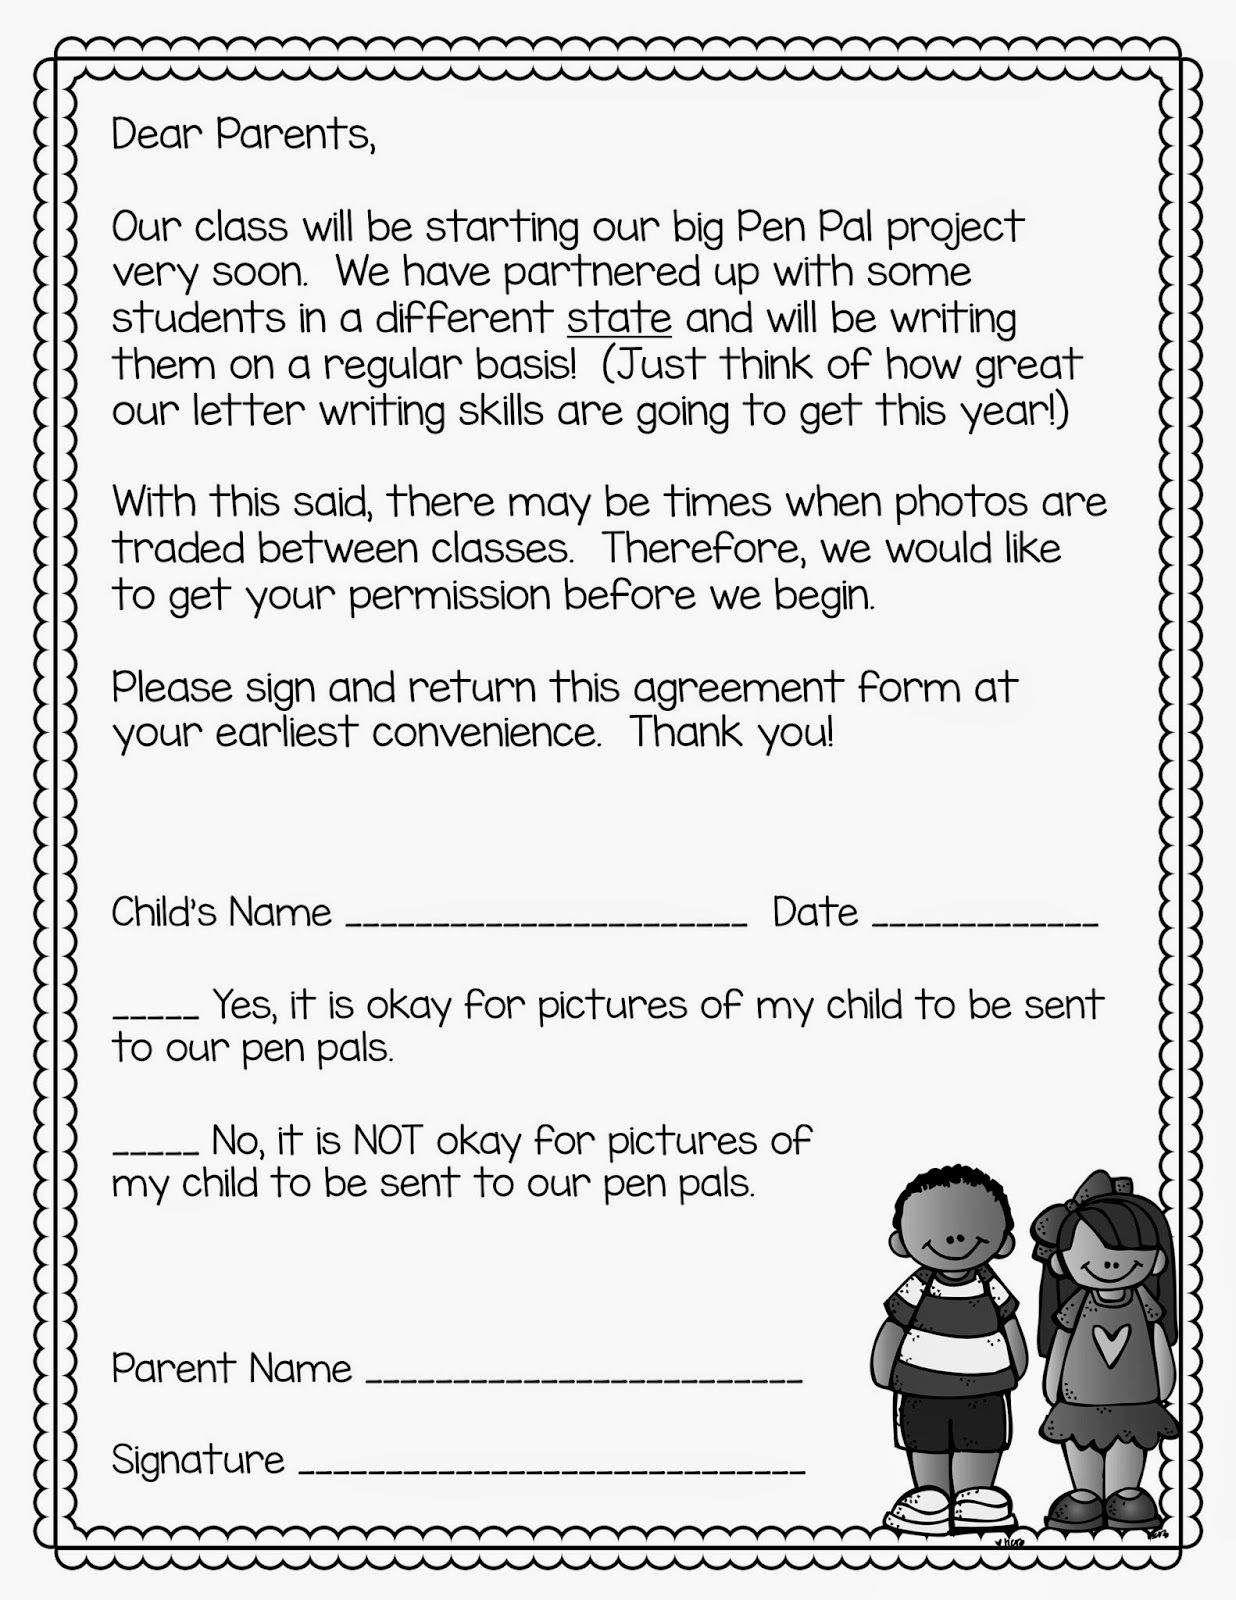 Classroom pen pals tips and tricks for the year classroom penpal parent letter for photographic permission aljukfo Choice Image